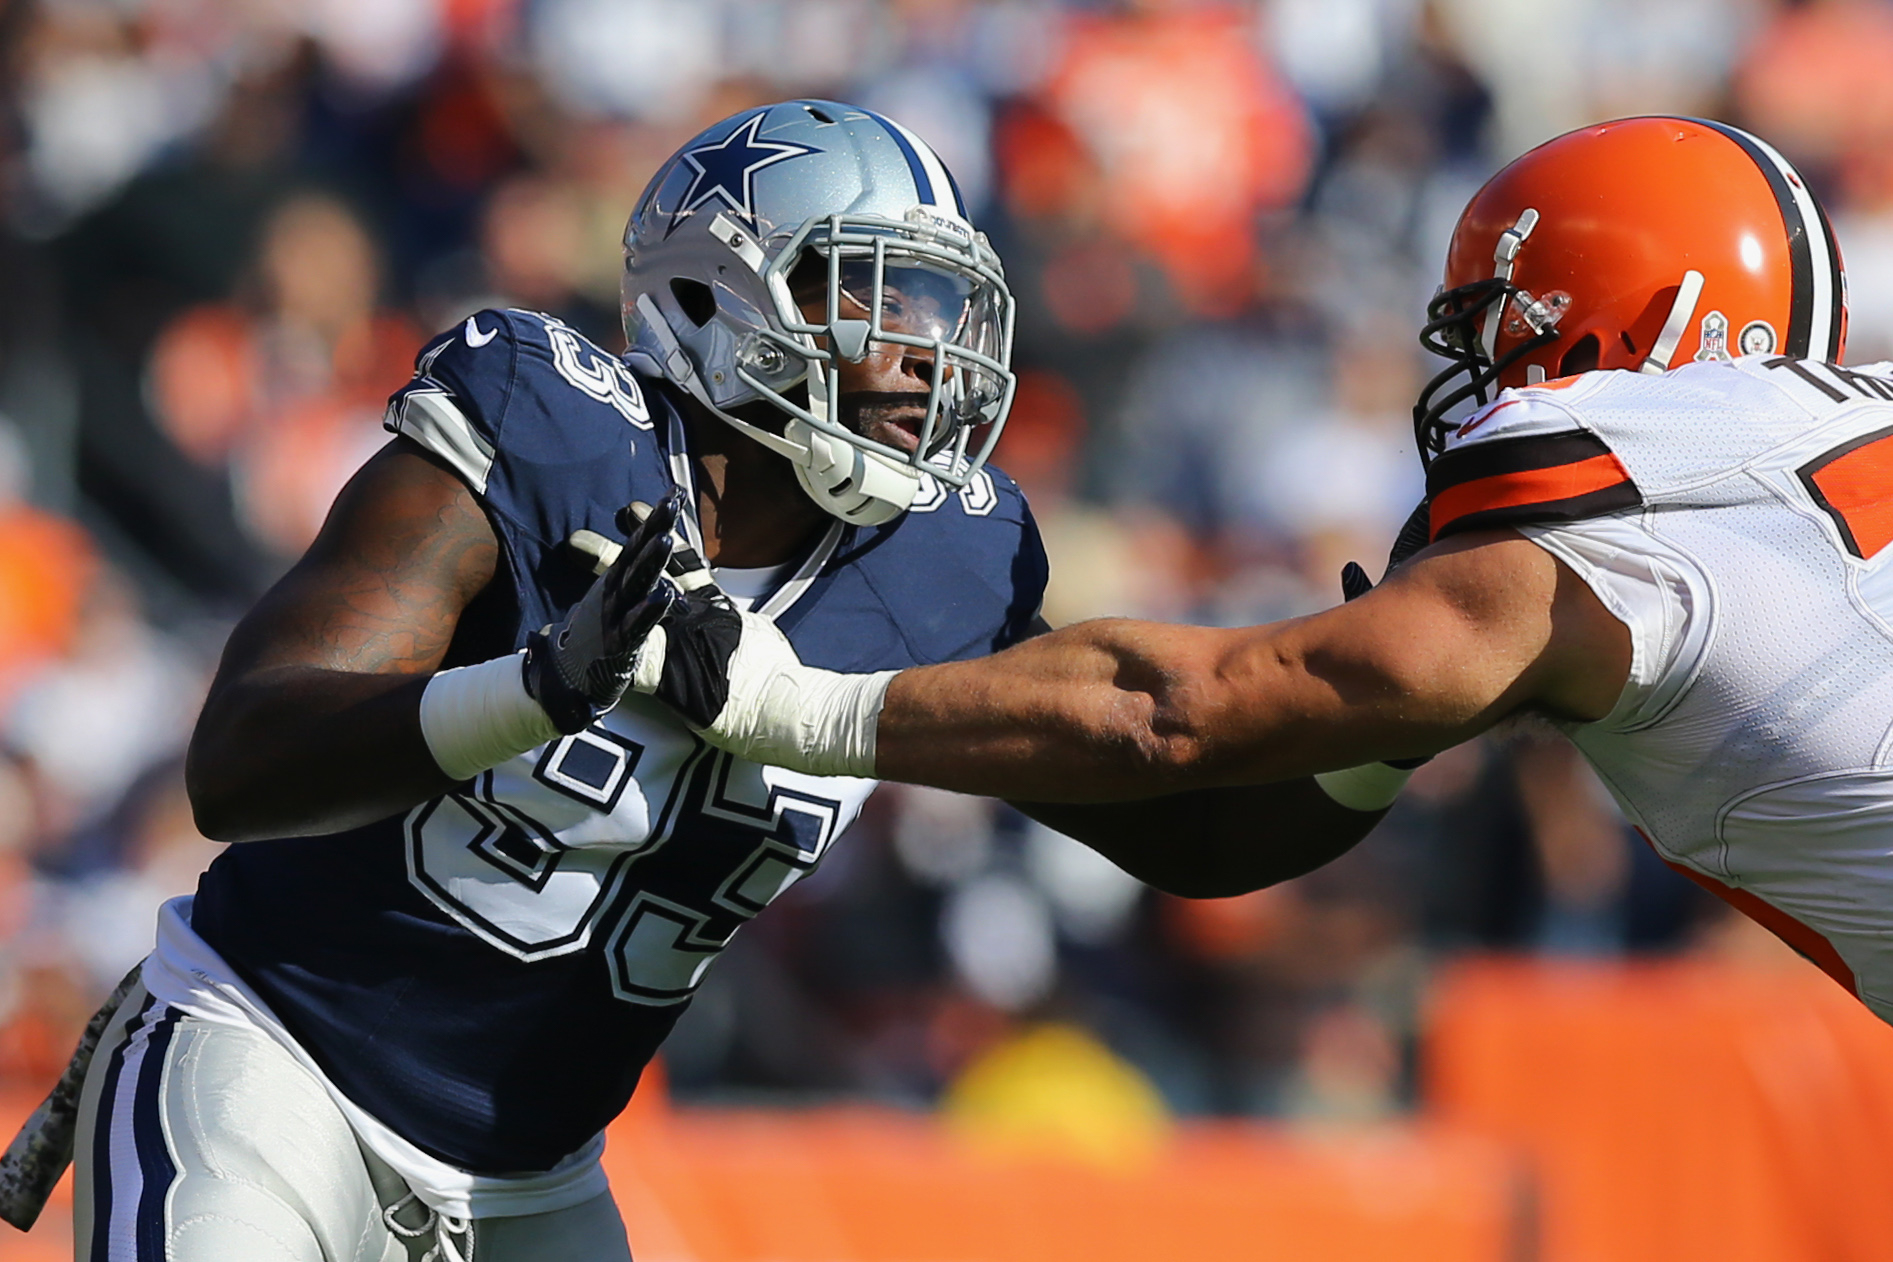 9666650-nfl-dallas-cowboys-at-cleveland-browns